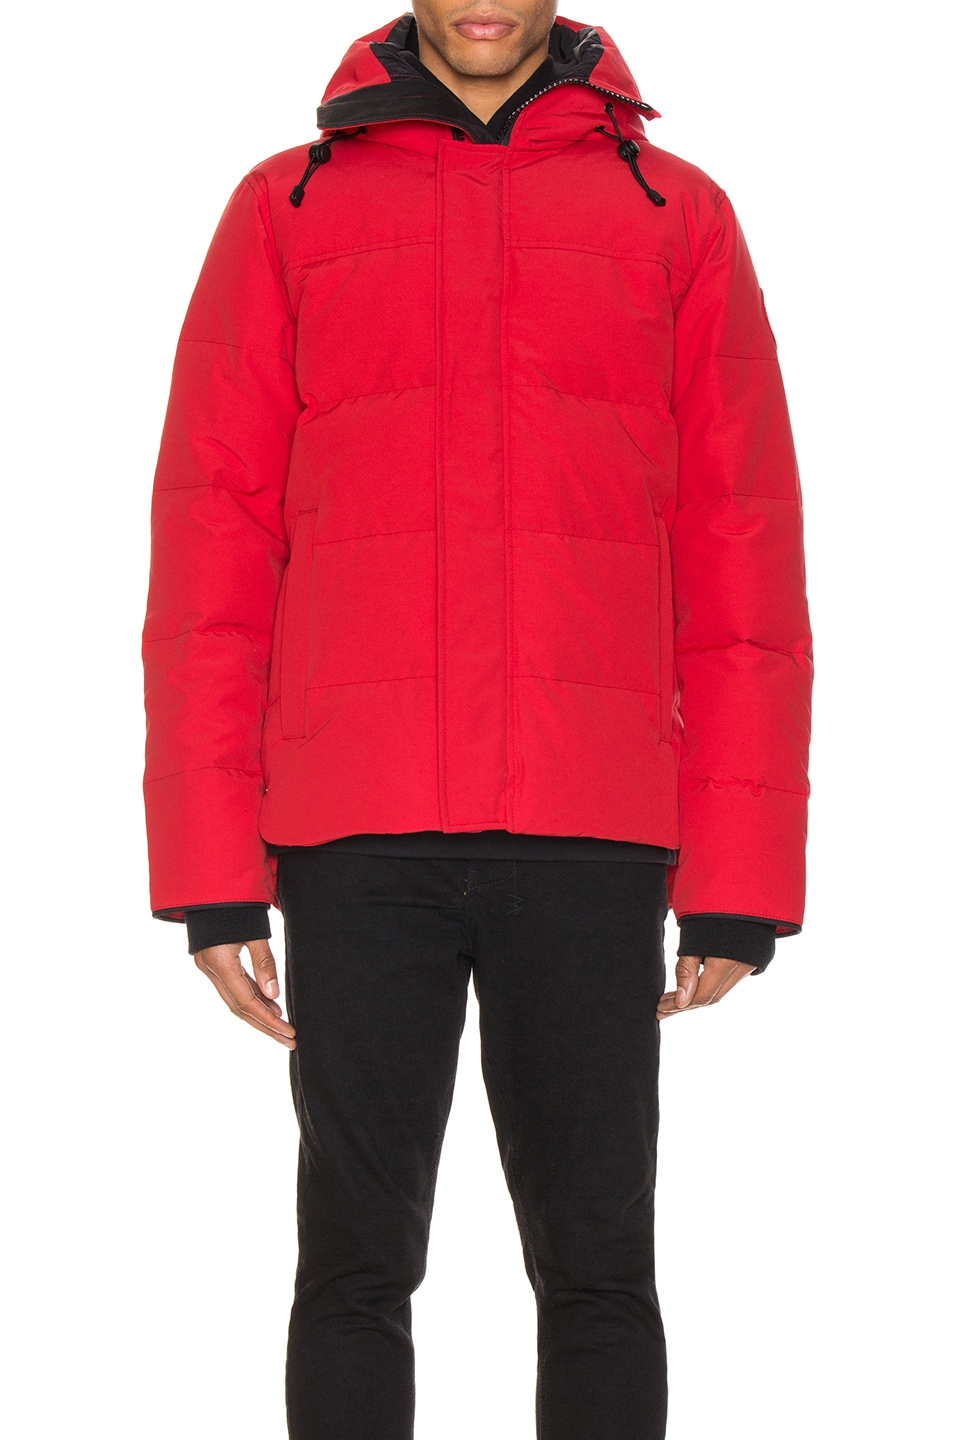 Image 2 of Canada Goose Macmillan Parka in Red